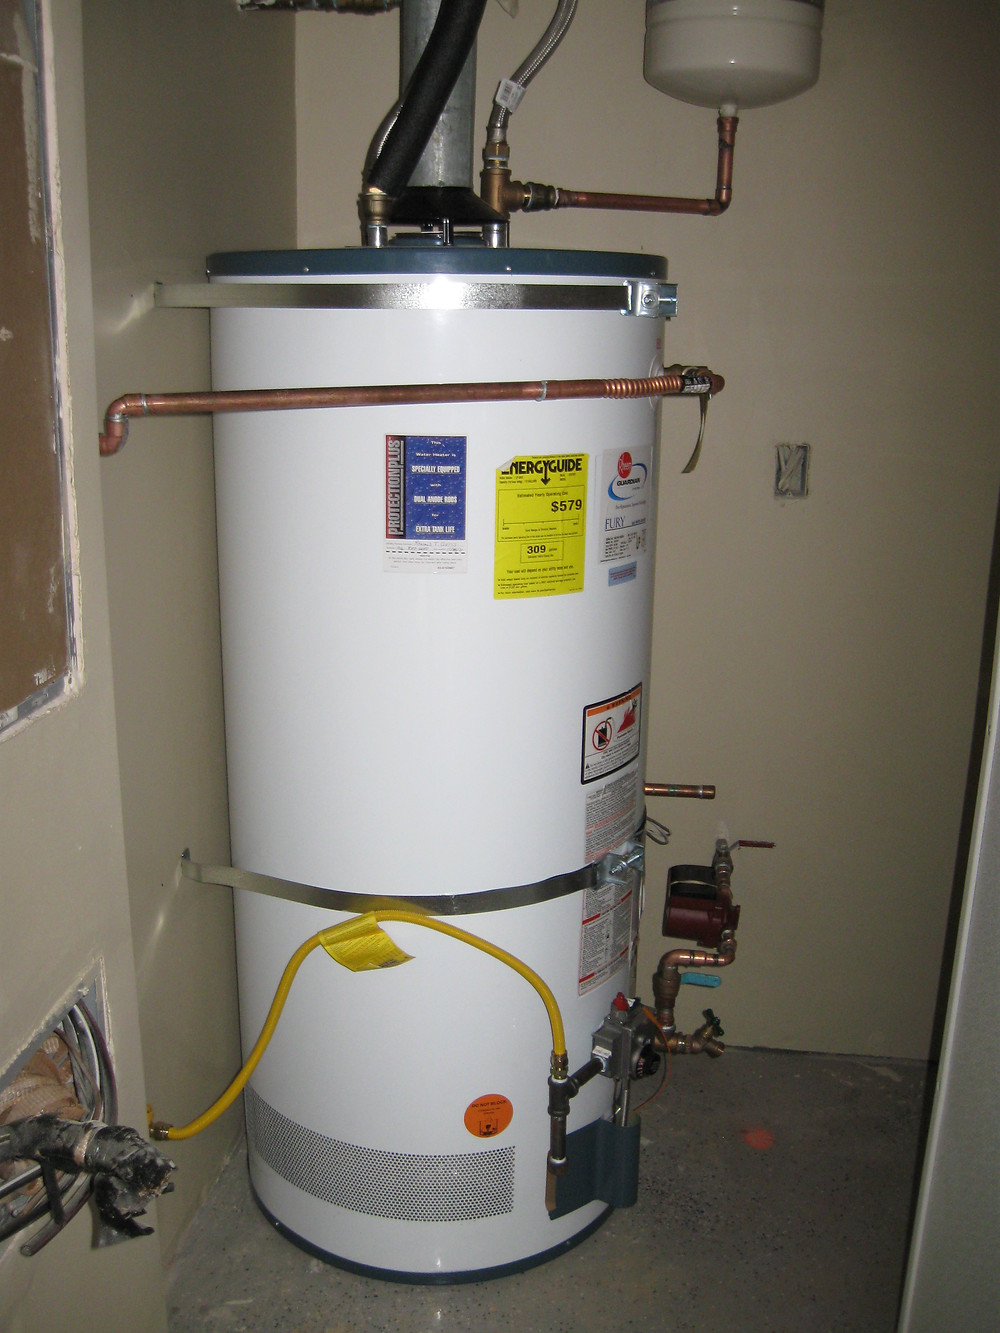 Standard Tank Water Heater in basement of house